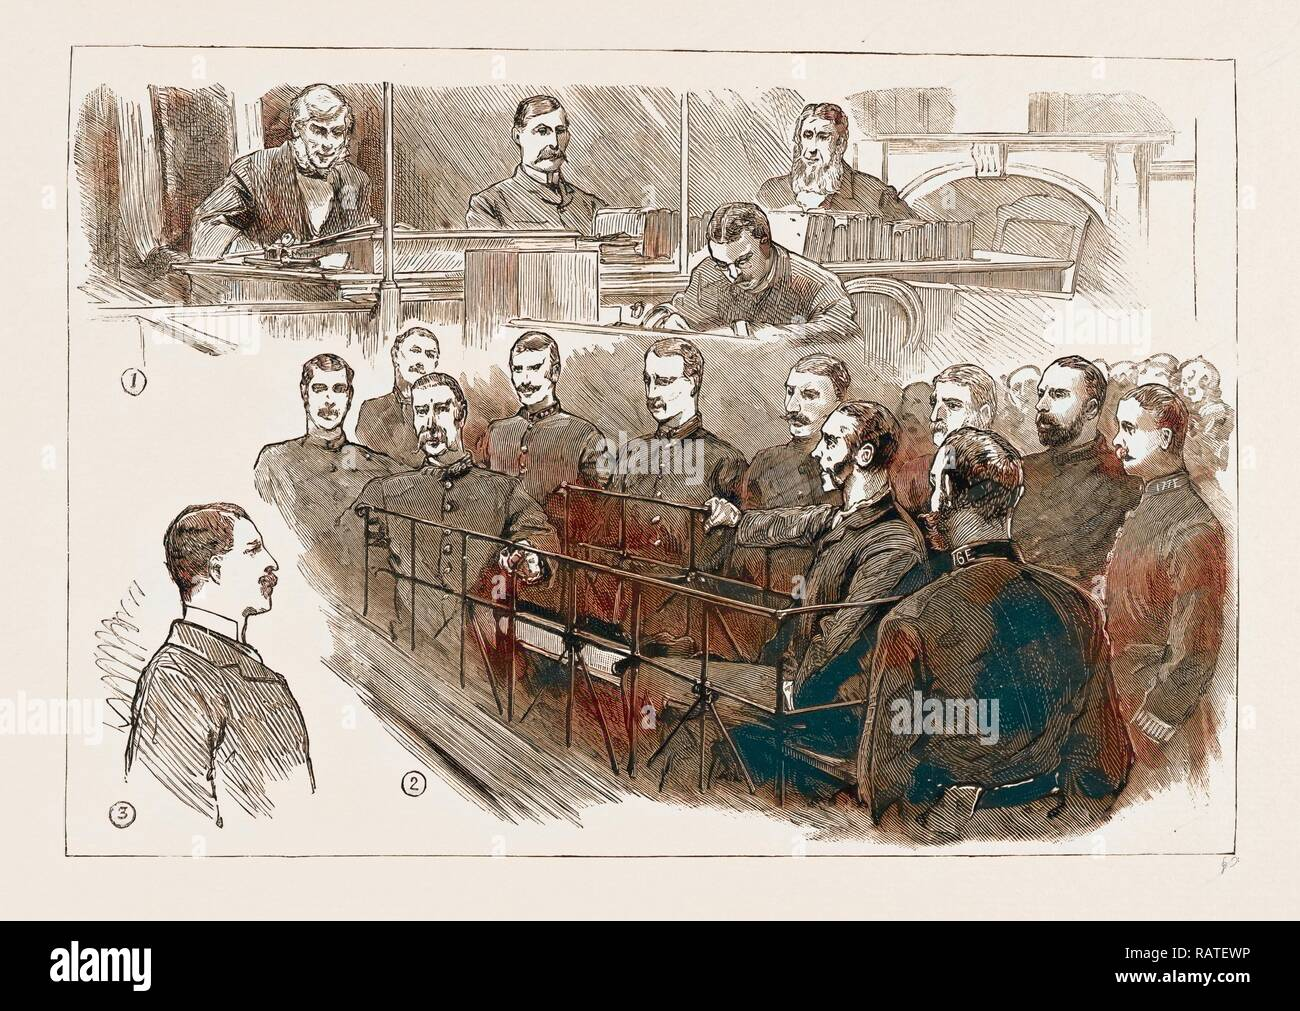 THE ASSASSINATION OF JAMES CAREY, ARRIVAL OF O'DONNELL IN LONDON: THE EXAMINATION OF THE PRISONER AT BOW STREET reimagined - Stock Image